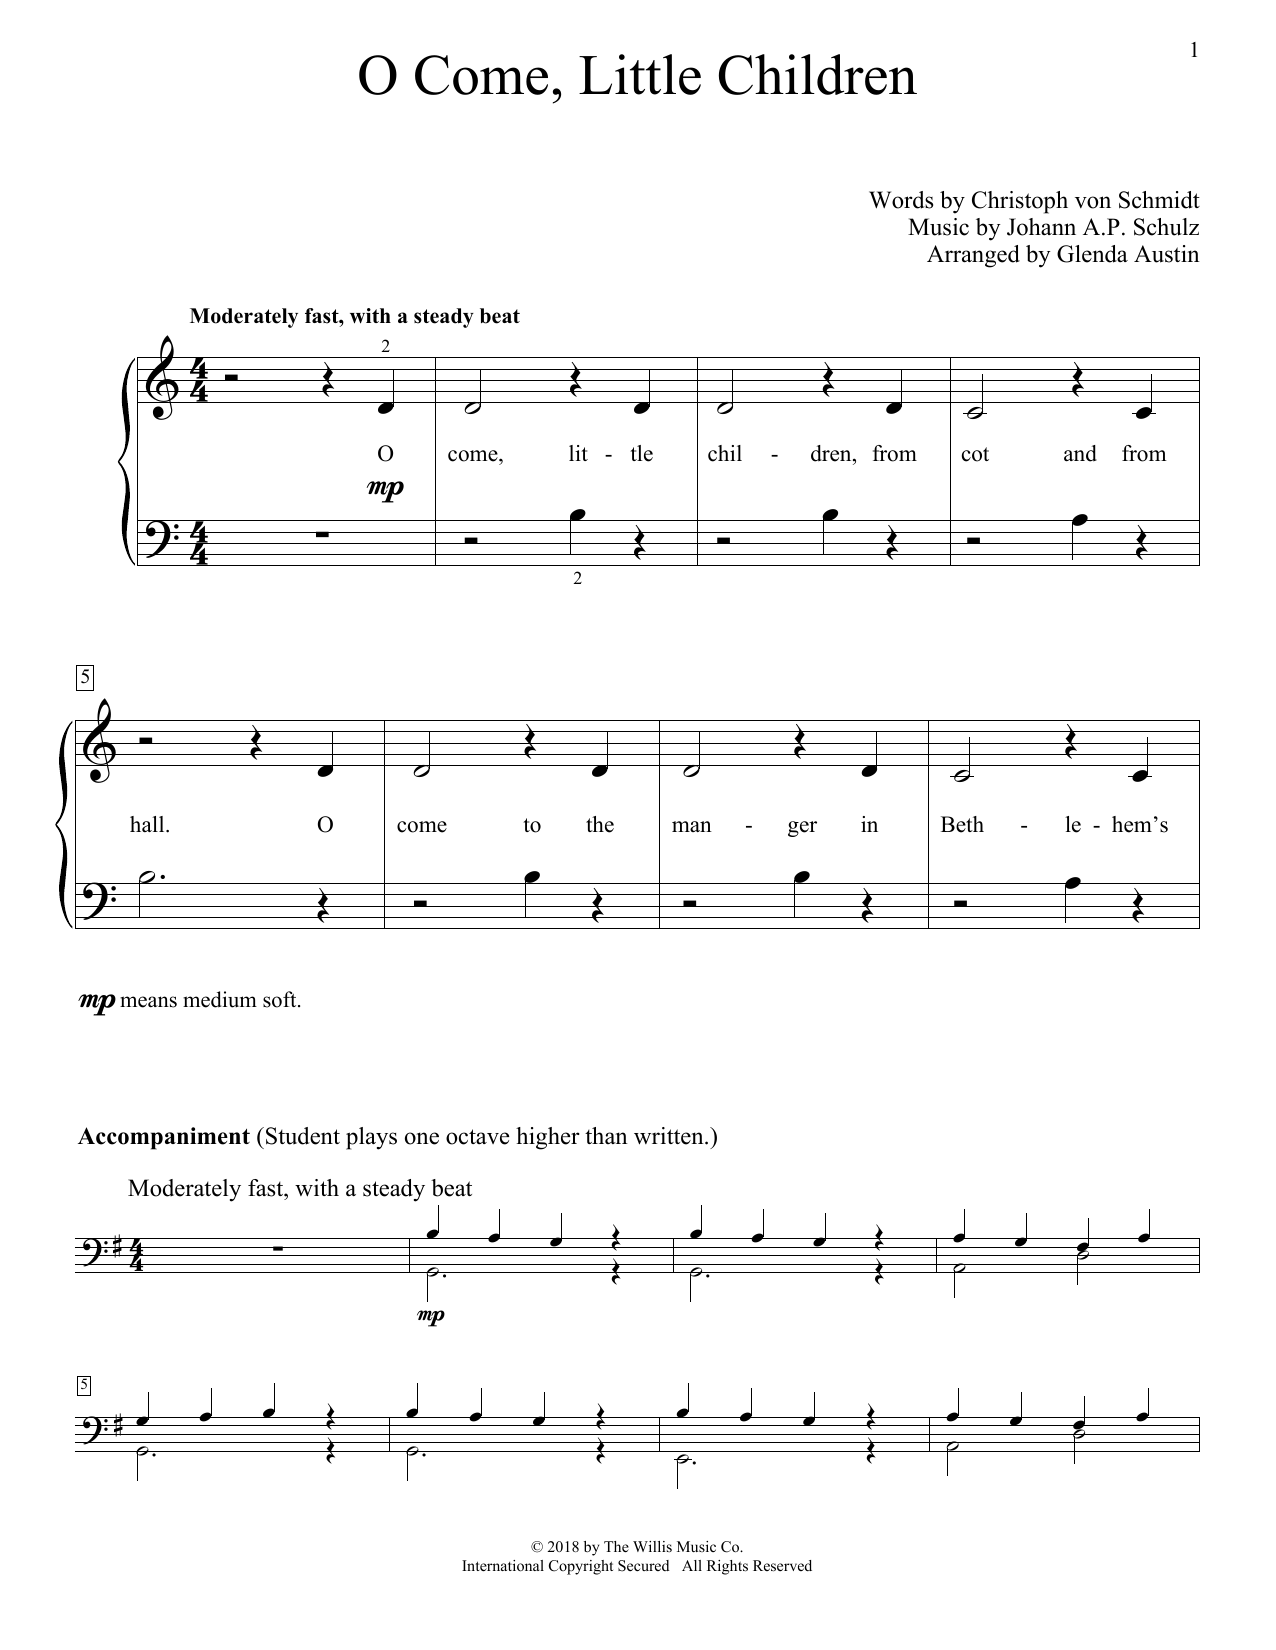 Glenda Austin O Come, Little Children sheet music notes and chords. Download Printable PDF.